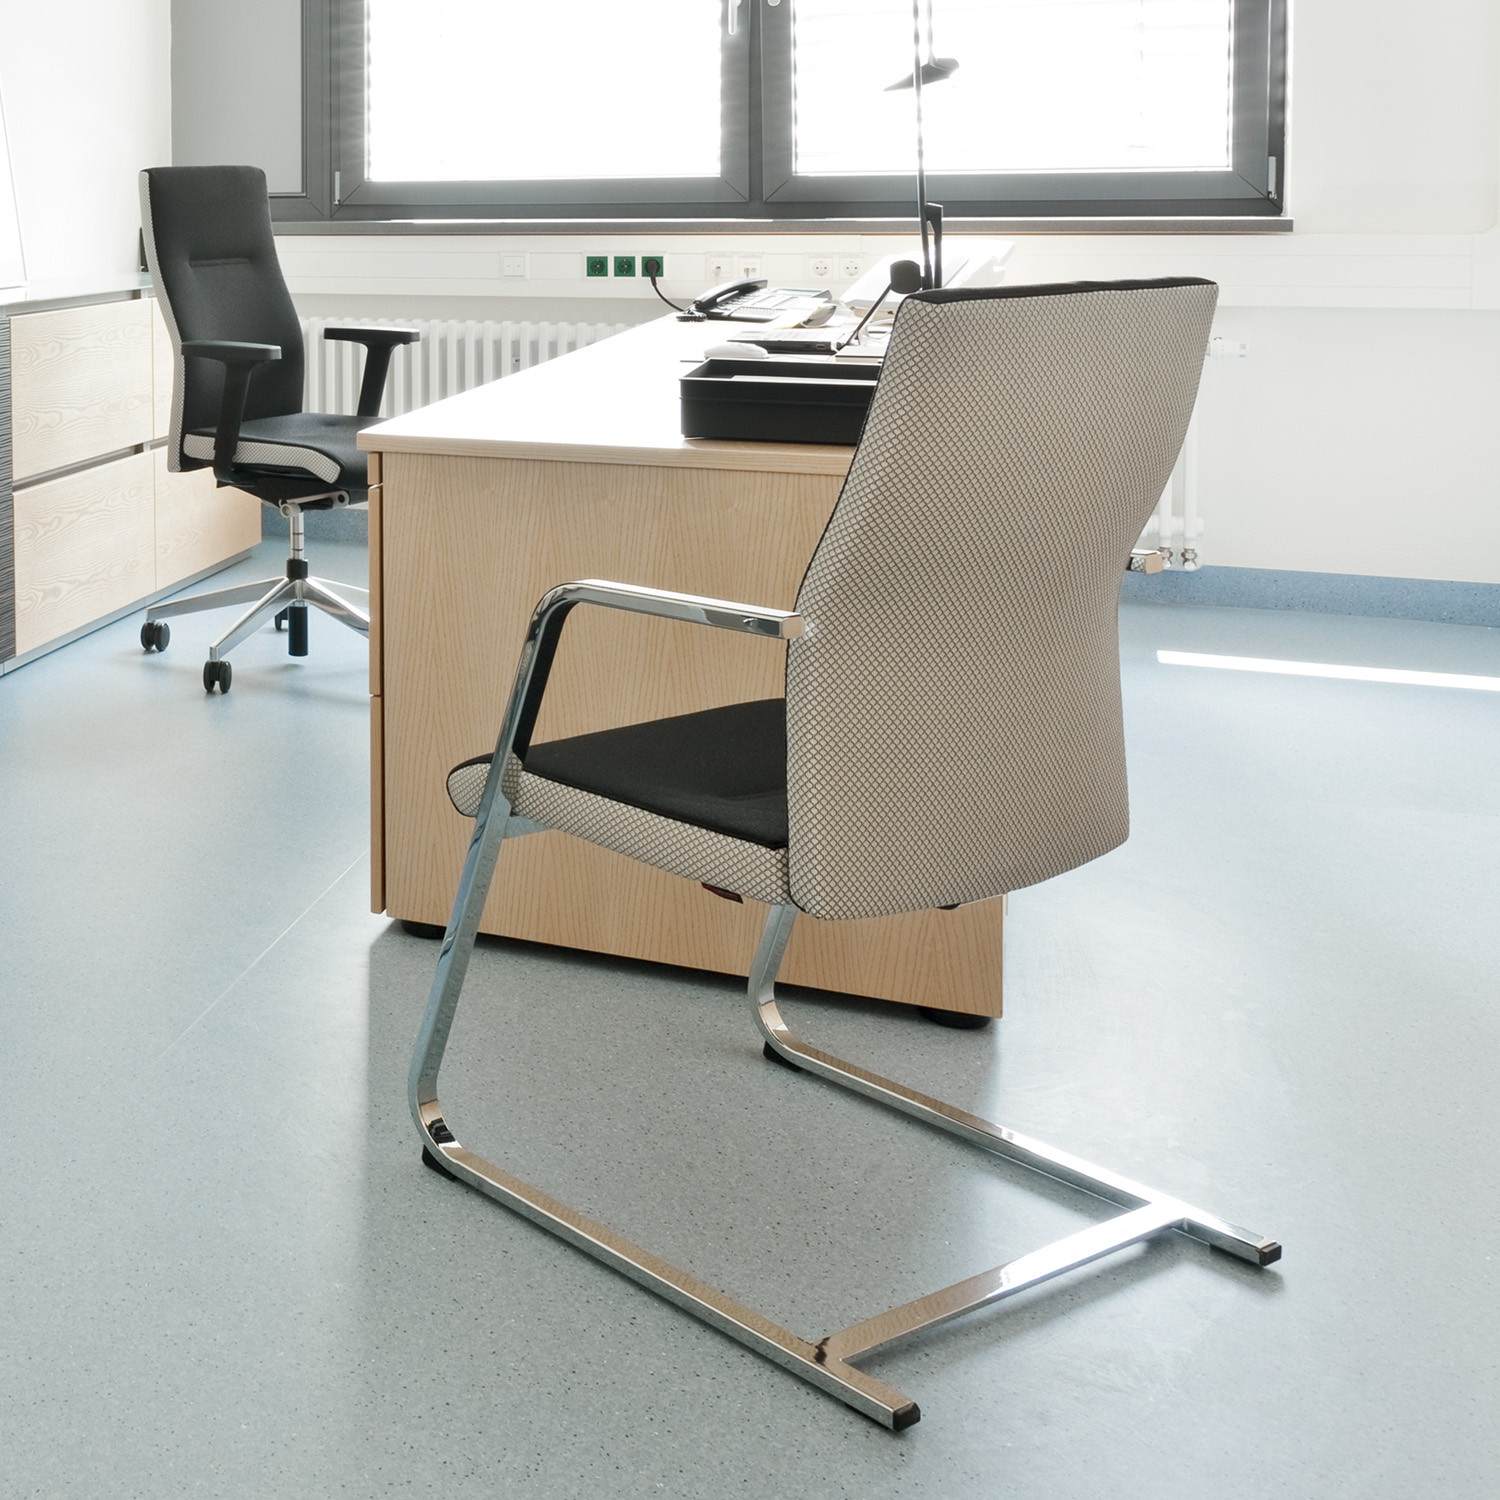 CuboFLEX Cantilever Chair by Zuco